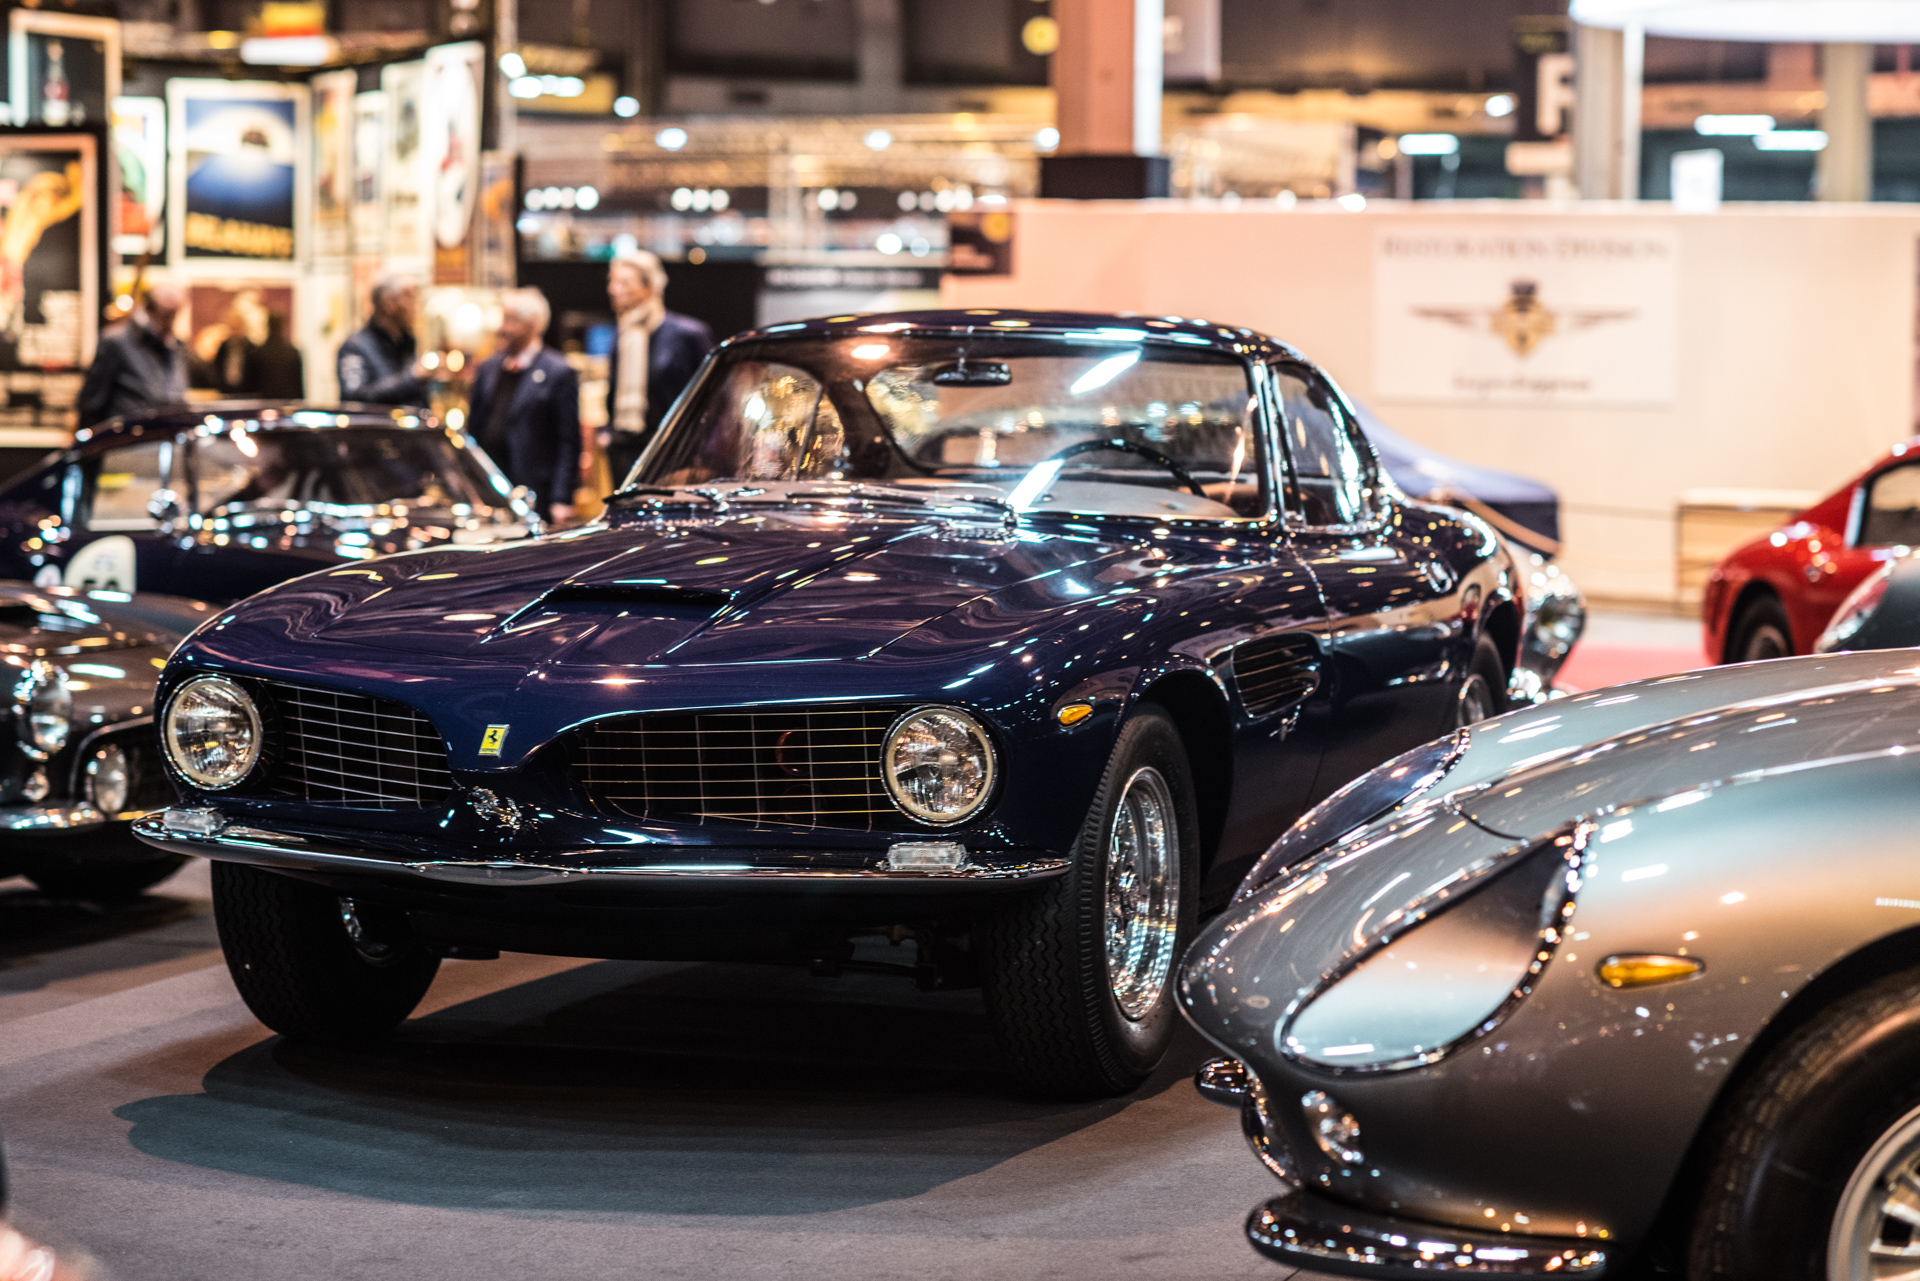 Rétromobile 2018 Review - classic cars in snow - The Classic Car Trust